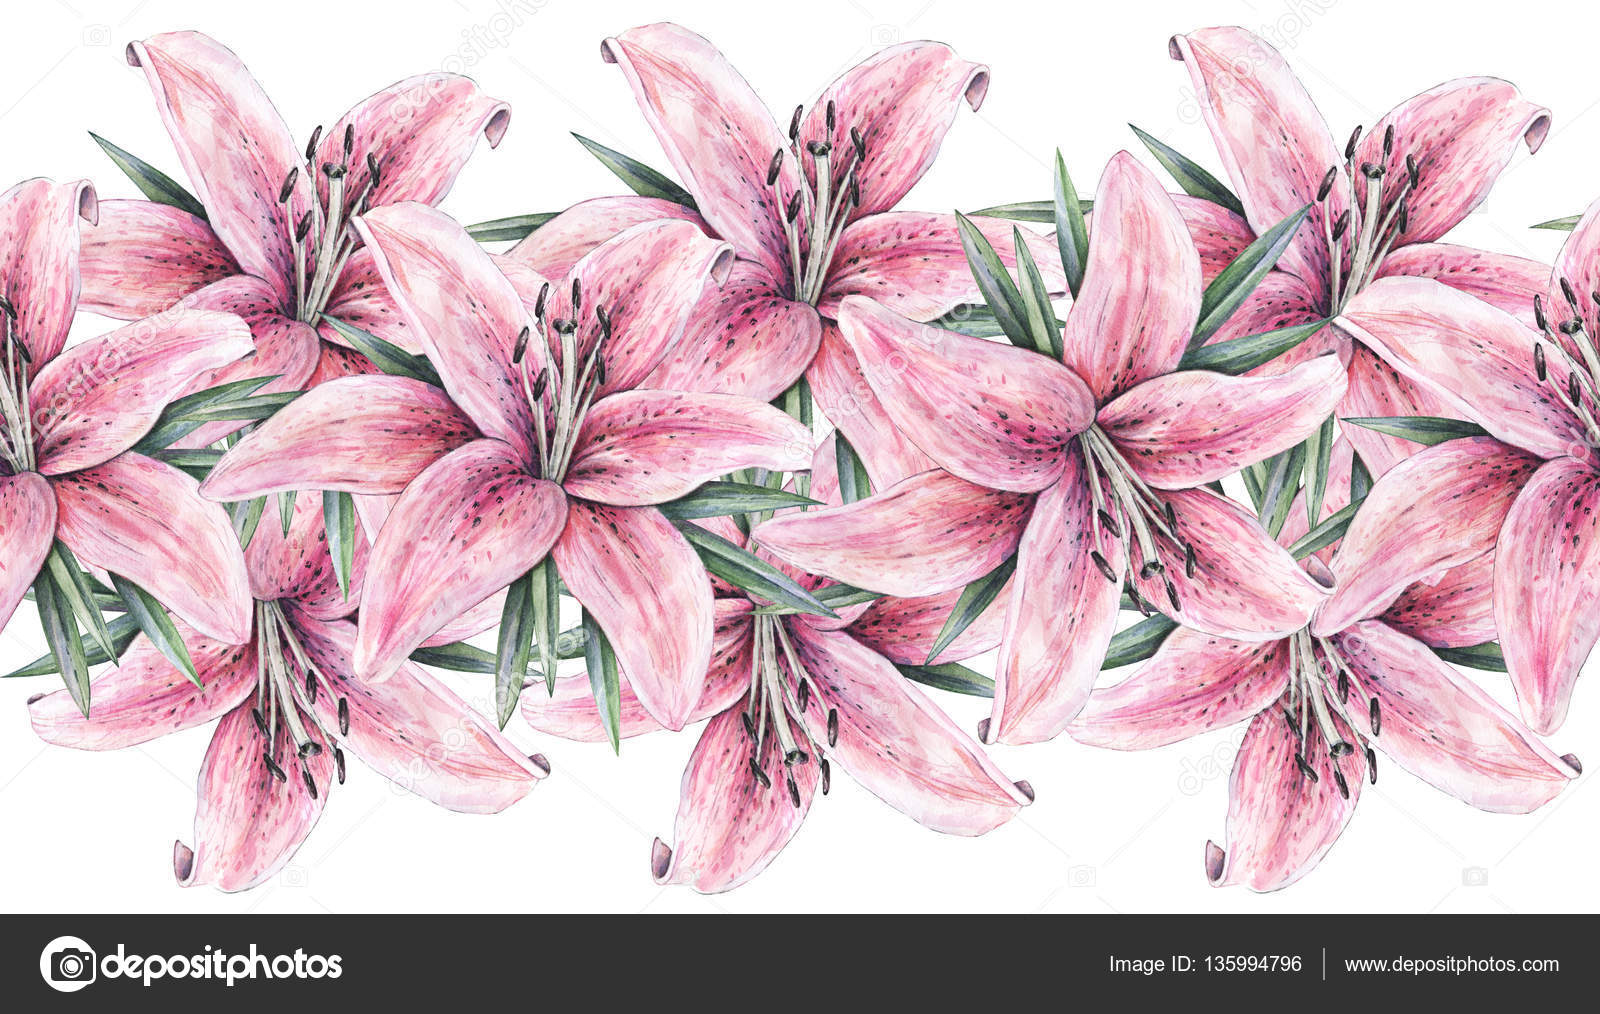 Pink lily flowers isolated on white background watercolor handwork pink lily flowers isolated on white background watercolor handwork illustration drawing of blooming lily izmirmasajfo